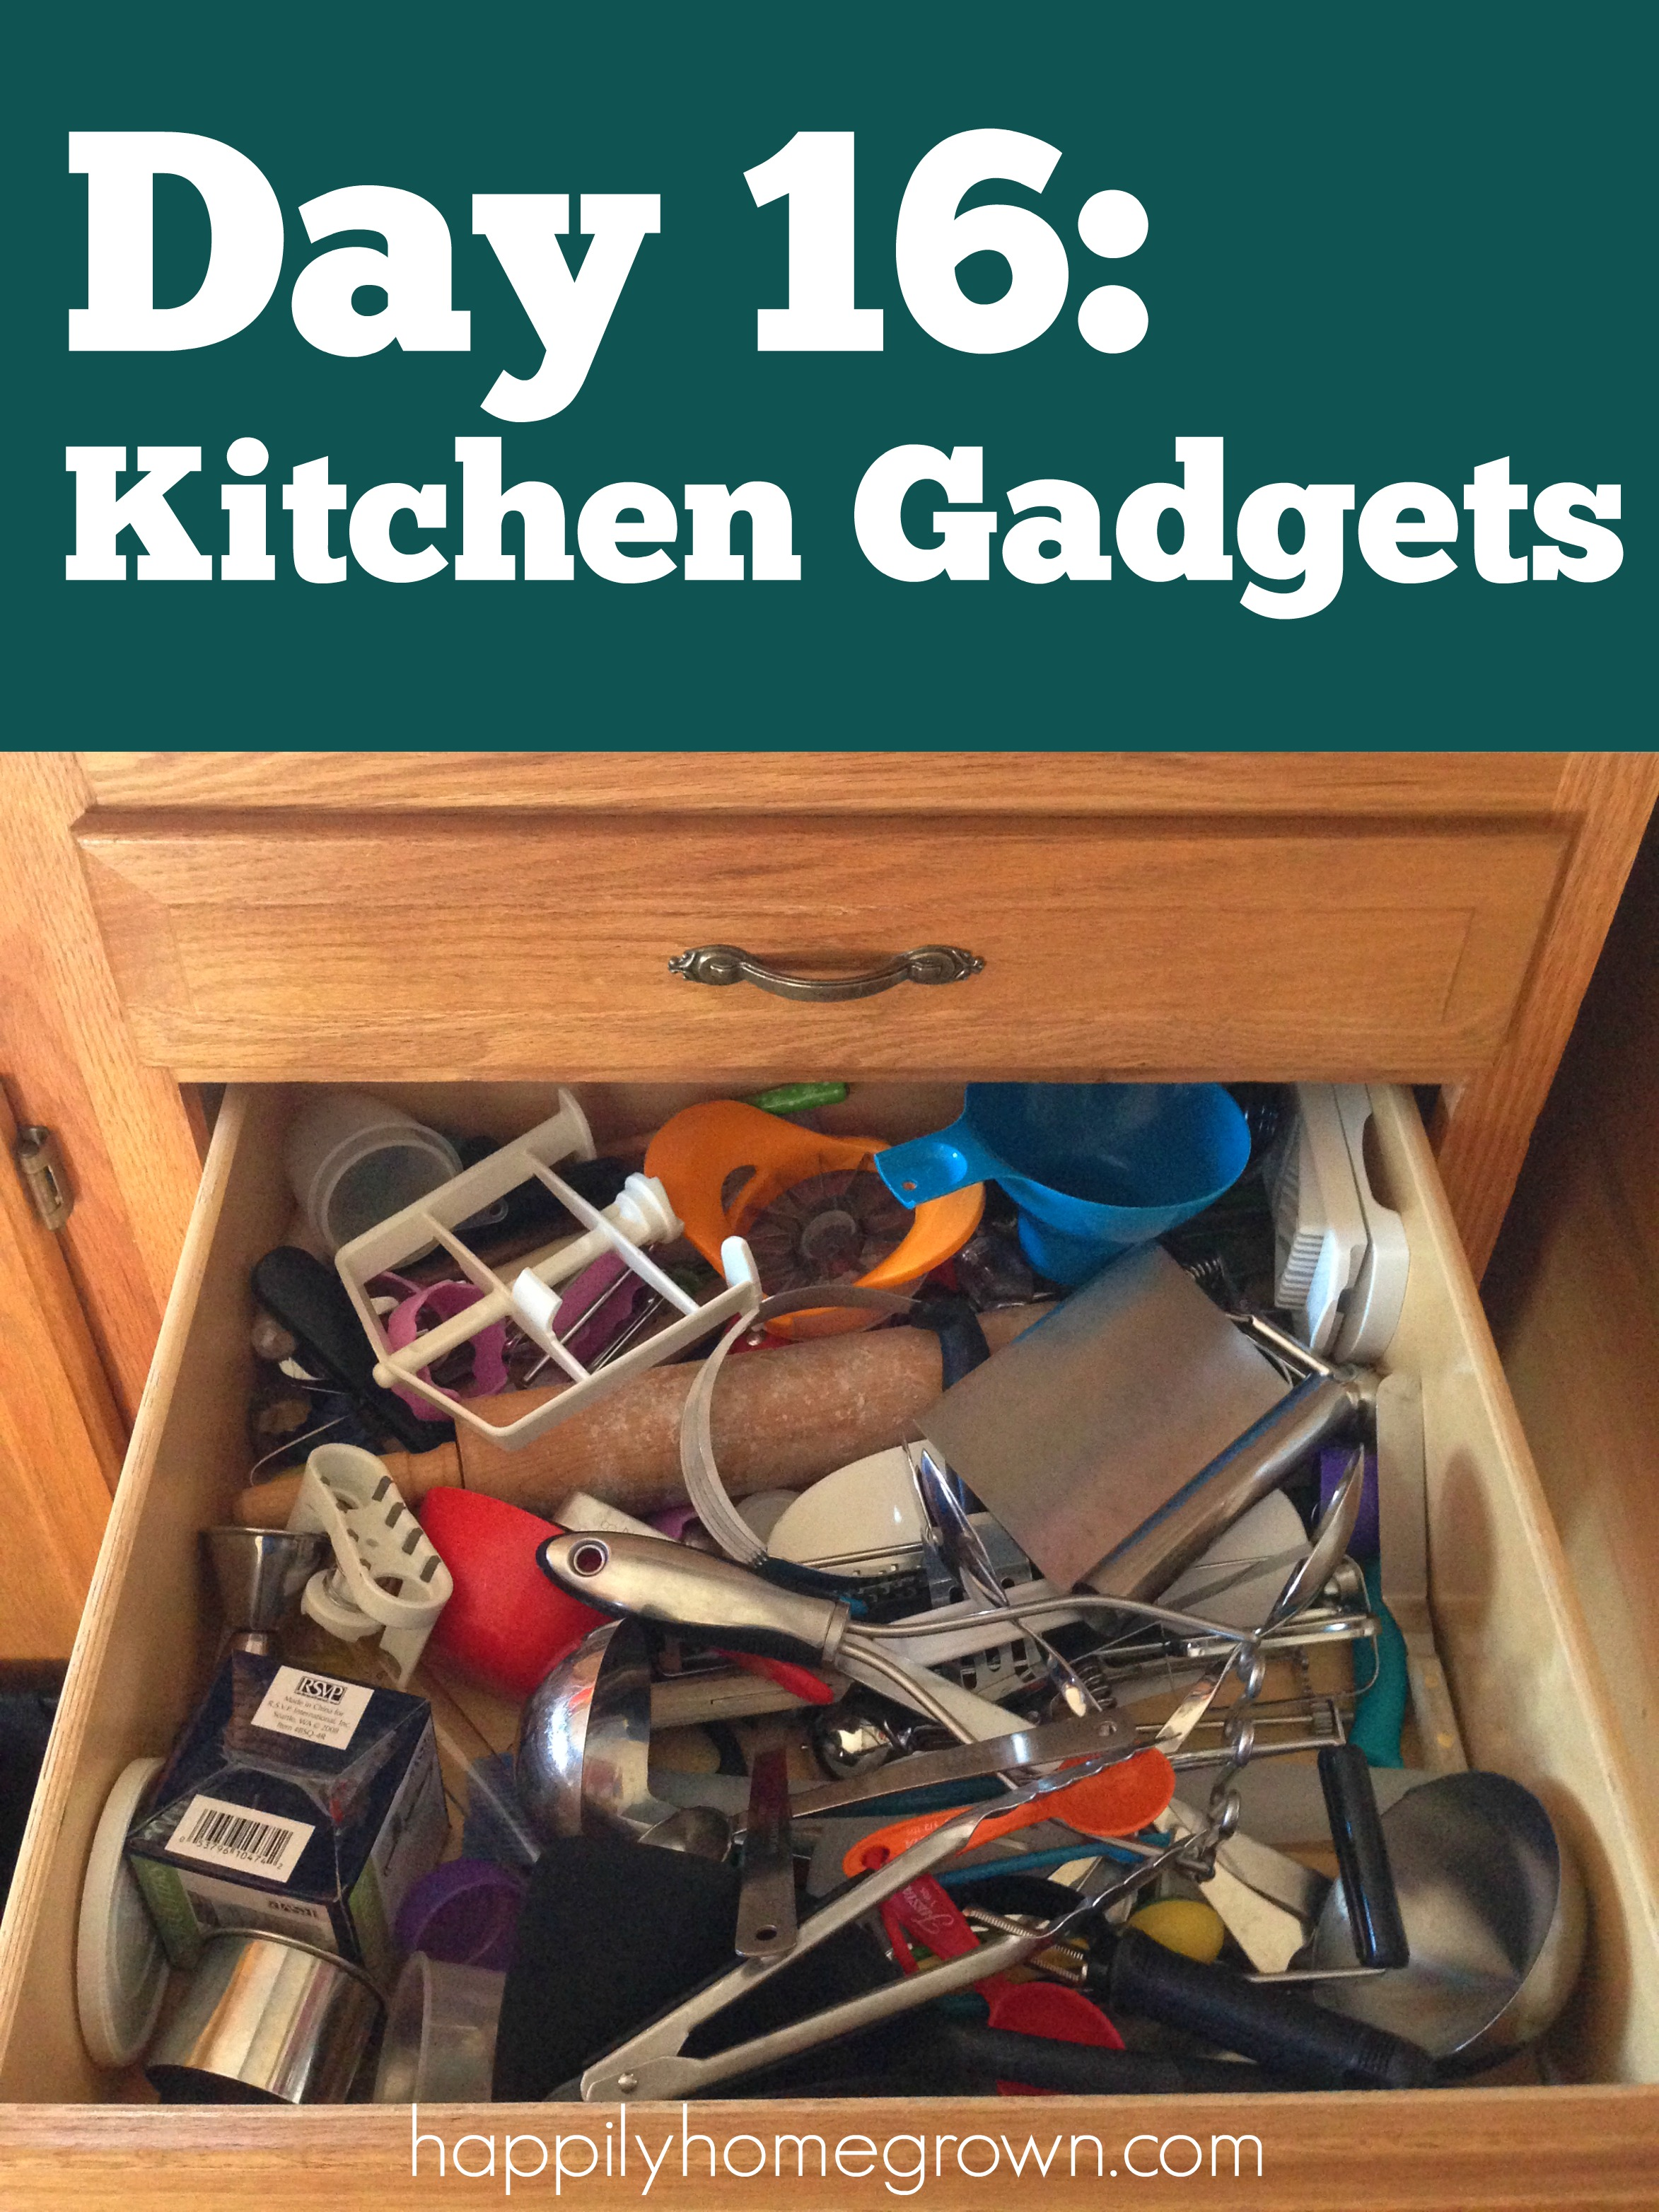 Day 16 Kitchen Gadgets